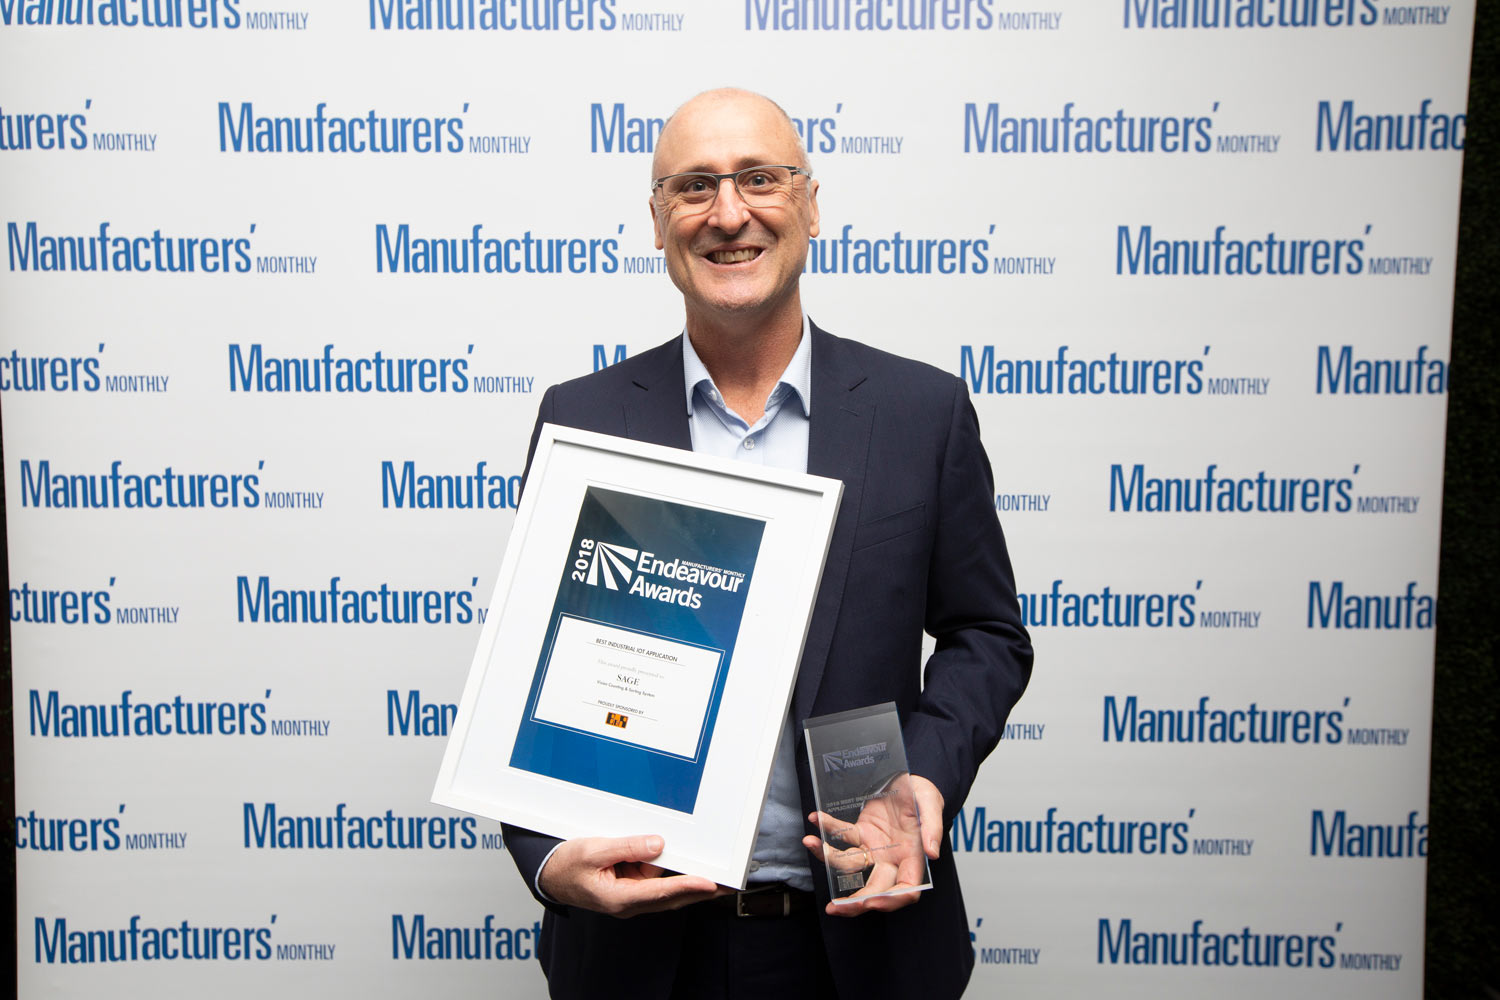 Automatic counting and sorting solution wins industrial IoT application award